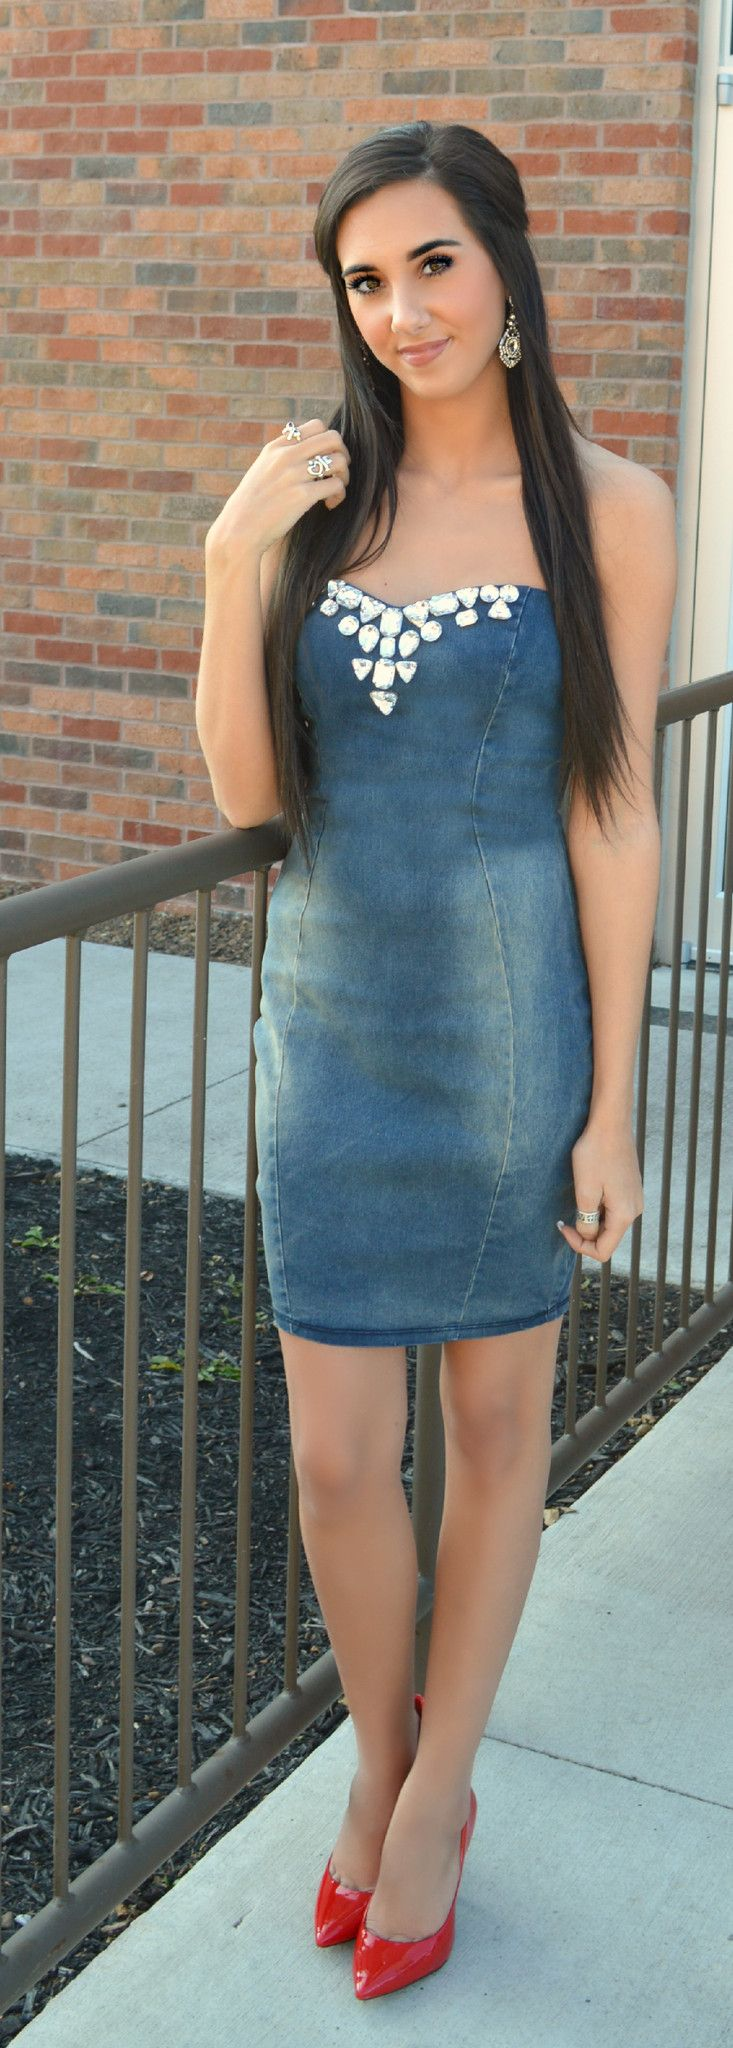 6e4f6ce1267 Strapless denim dress with sweetheart neckline embellished with large  rhinestones. - Great stretchy denim fabric. - Zips down the back.